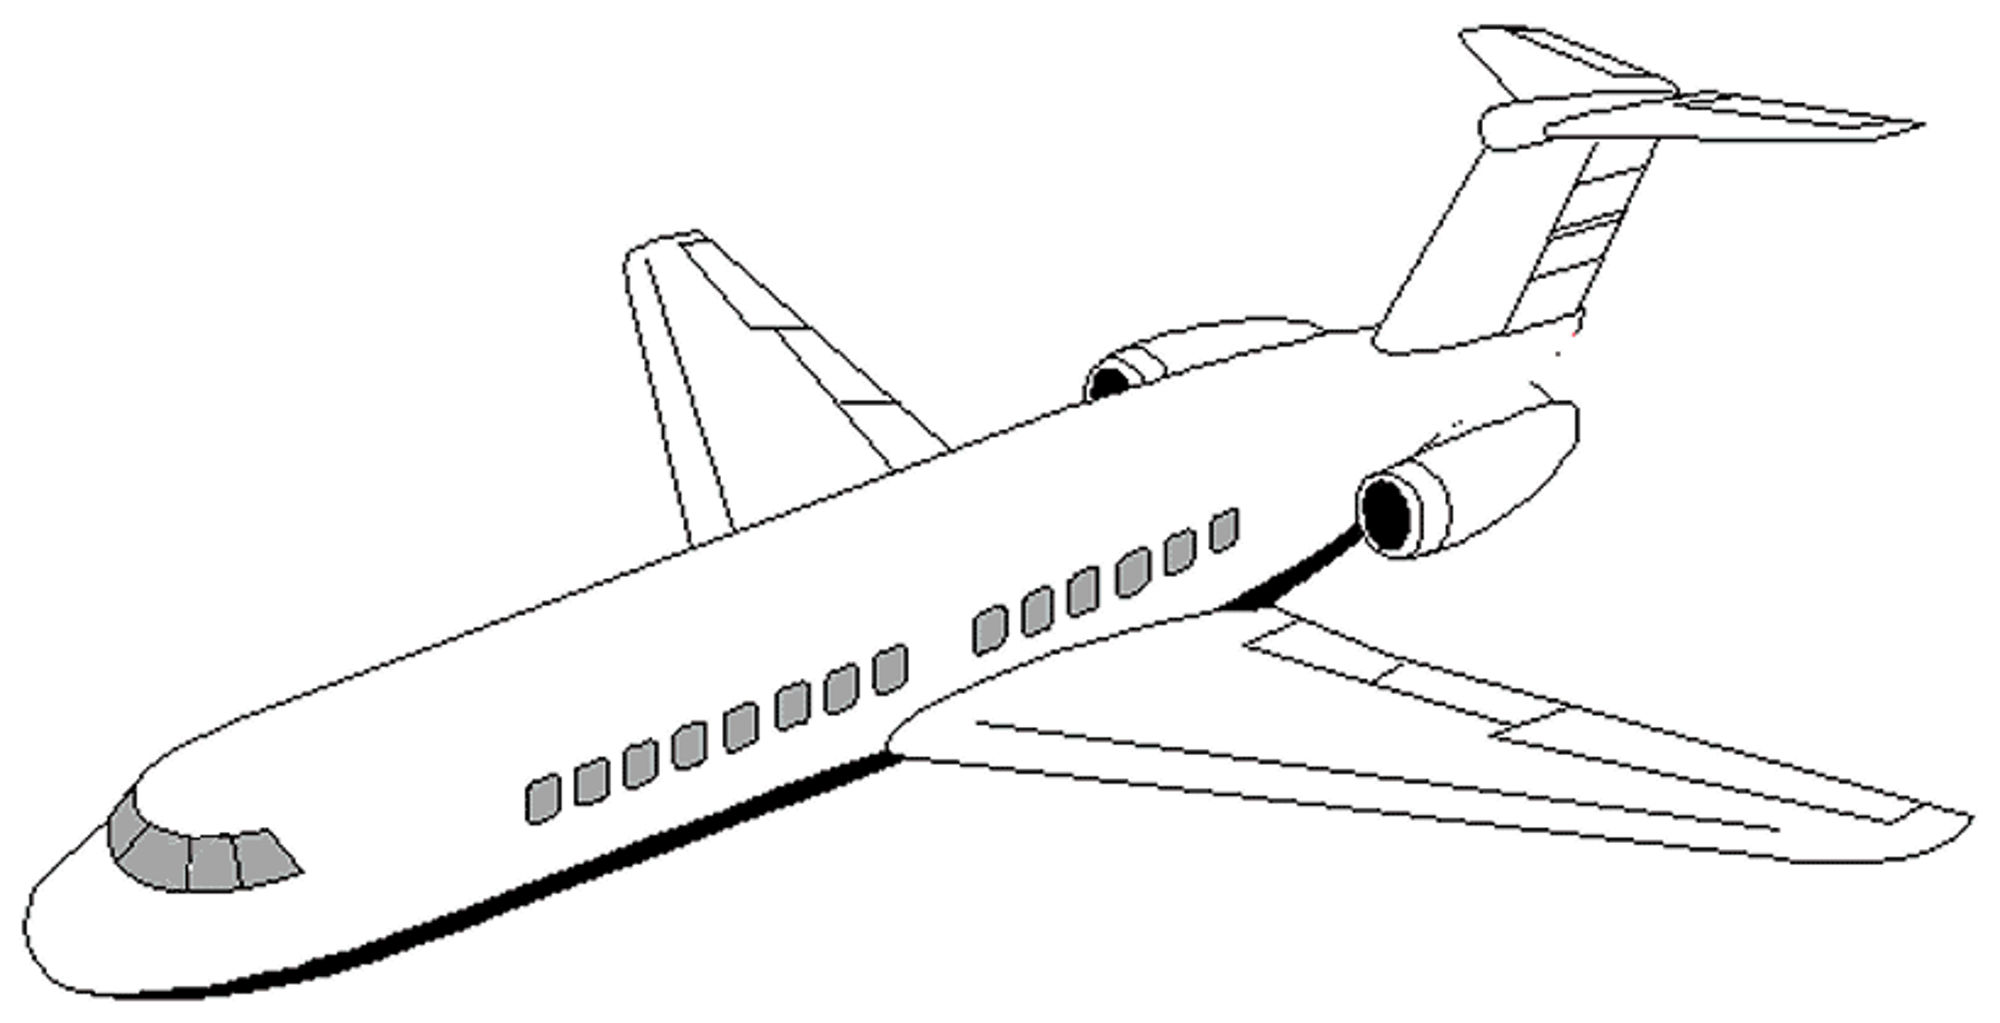 Coloring Pages For Airplanes : Print download the sophisticated transportation of